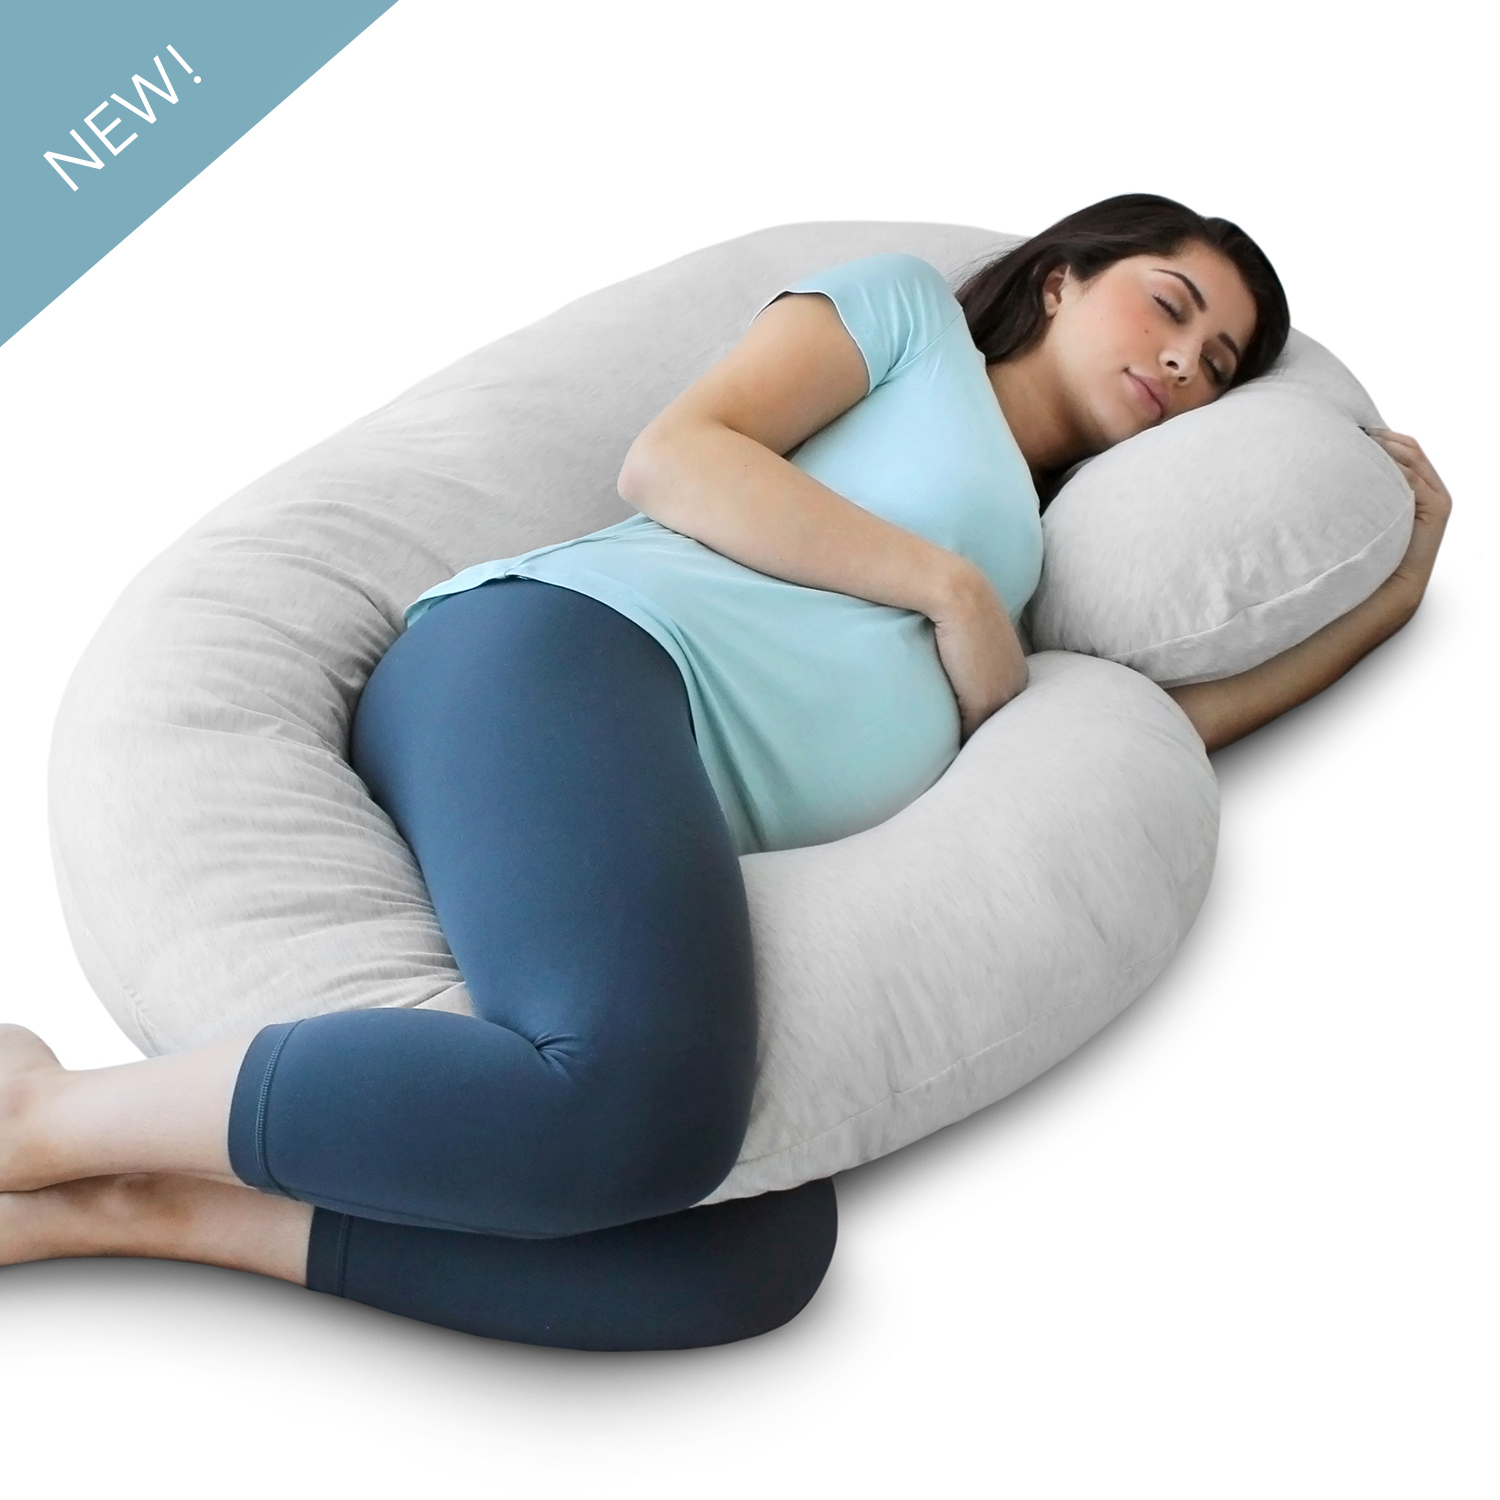 PharMeDoc Pregnancy Pillow with Jersey Cover - C Shaped ...